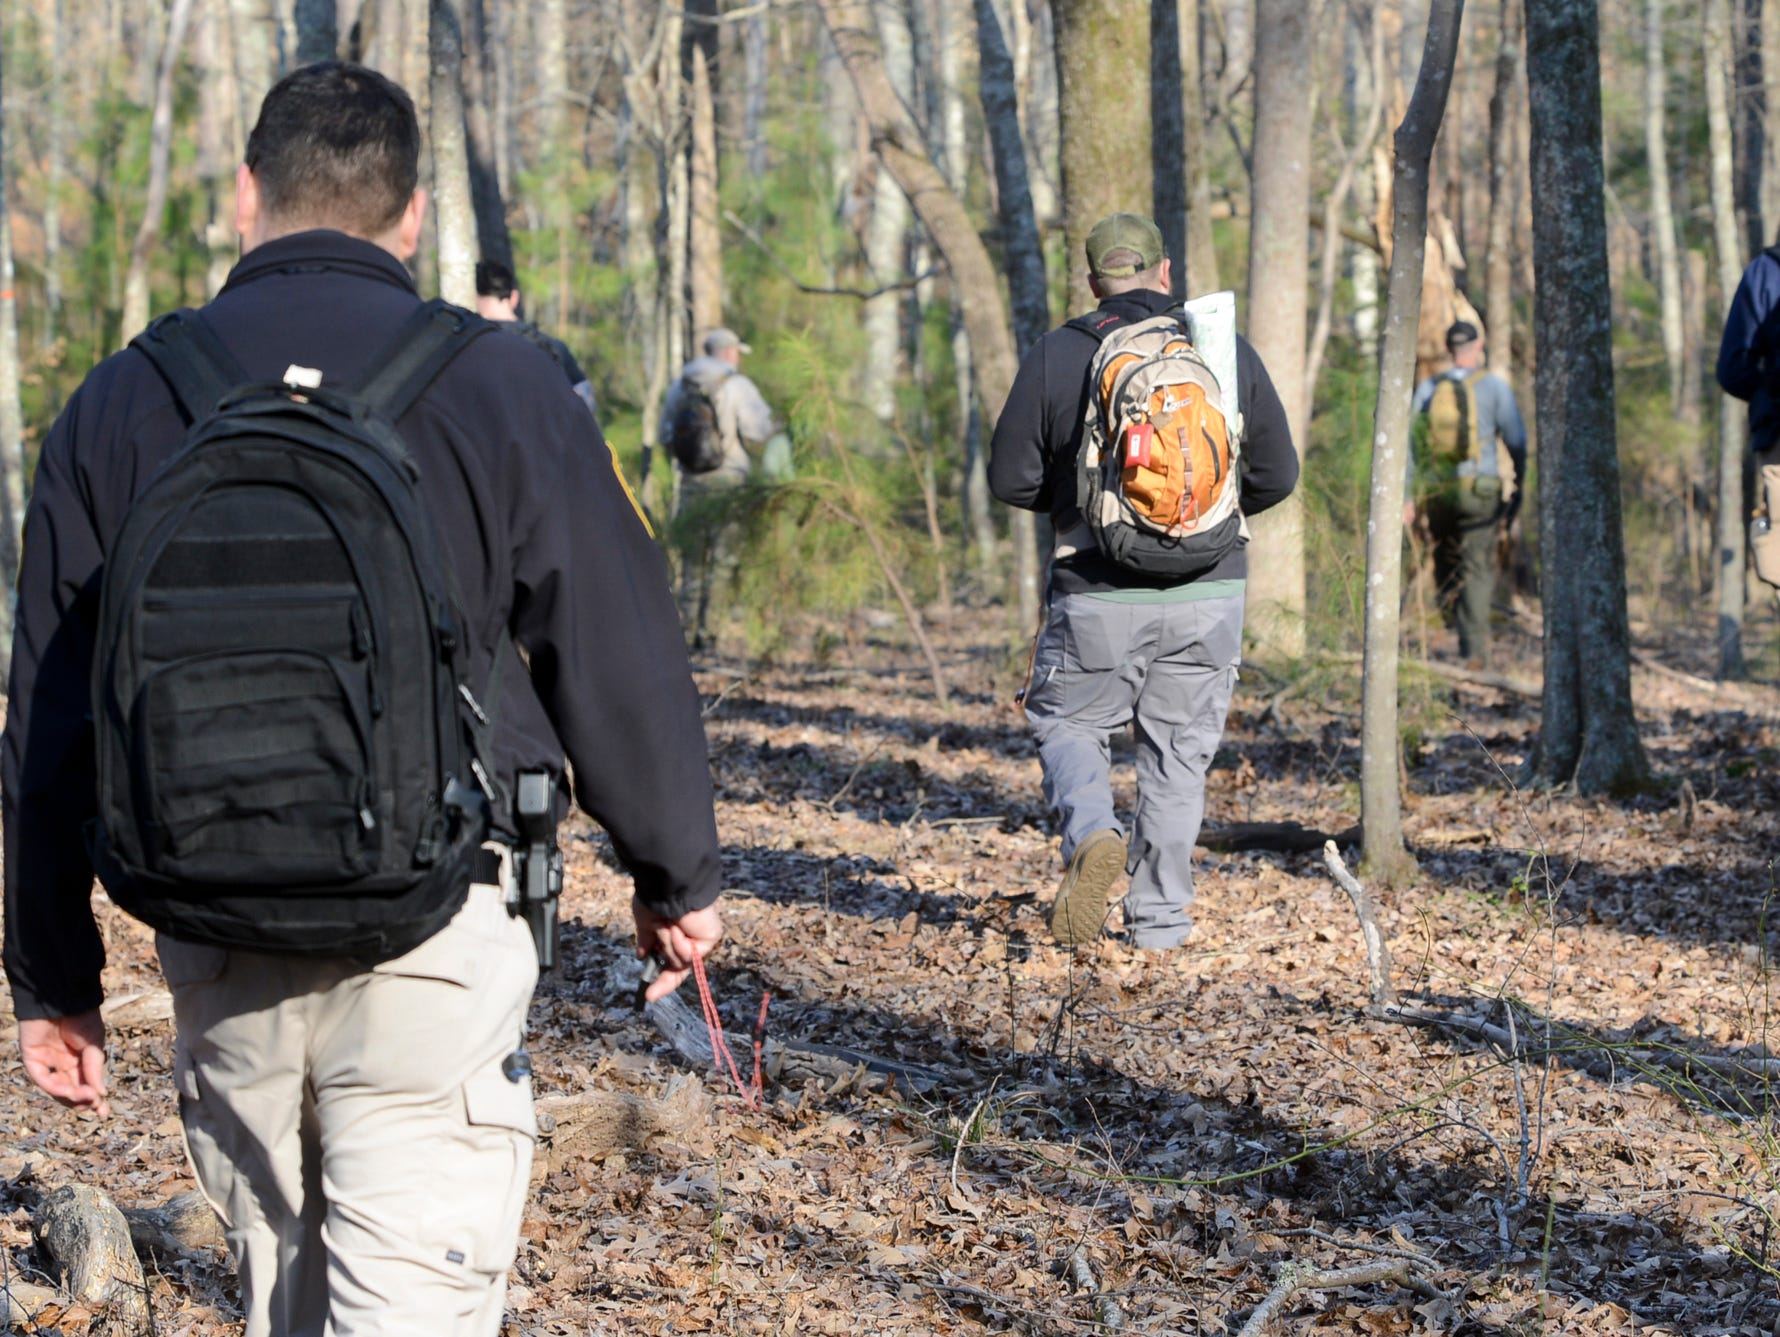 The Tennessee Bureau of Investigation held a land navigation training session for law enforcement agencies across the state, Wednesday, March 20.